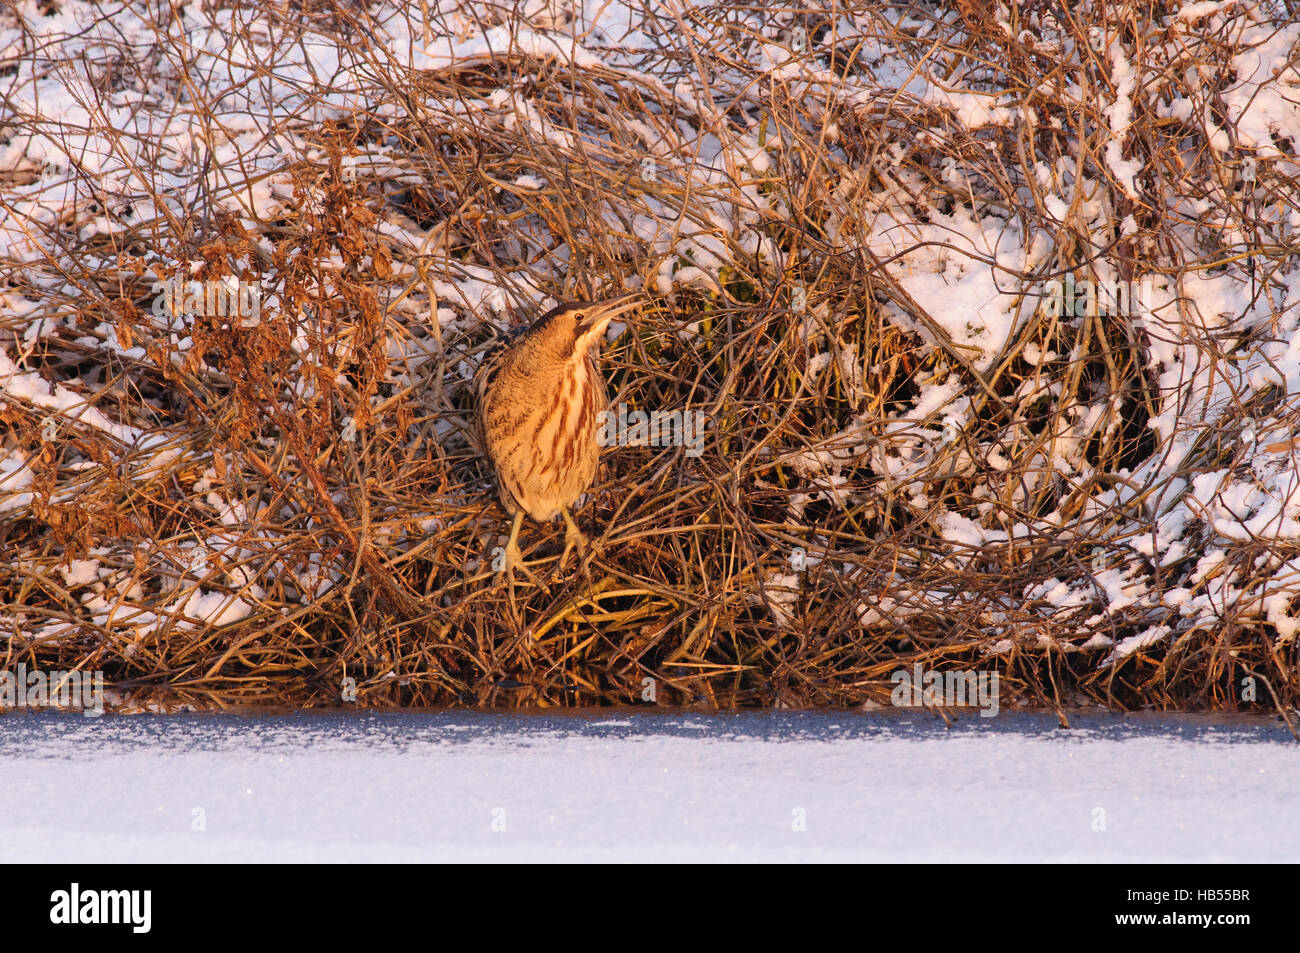 Great Bittern on ice and snow - Stock Image